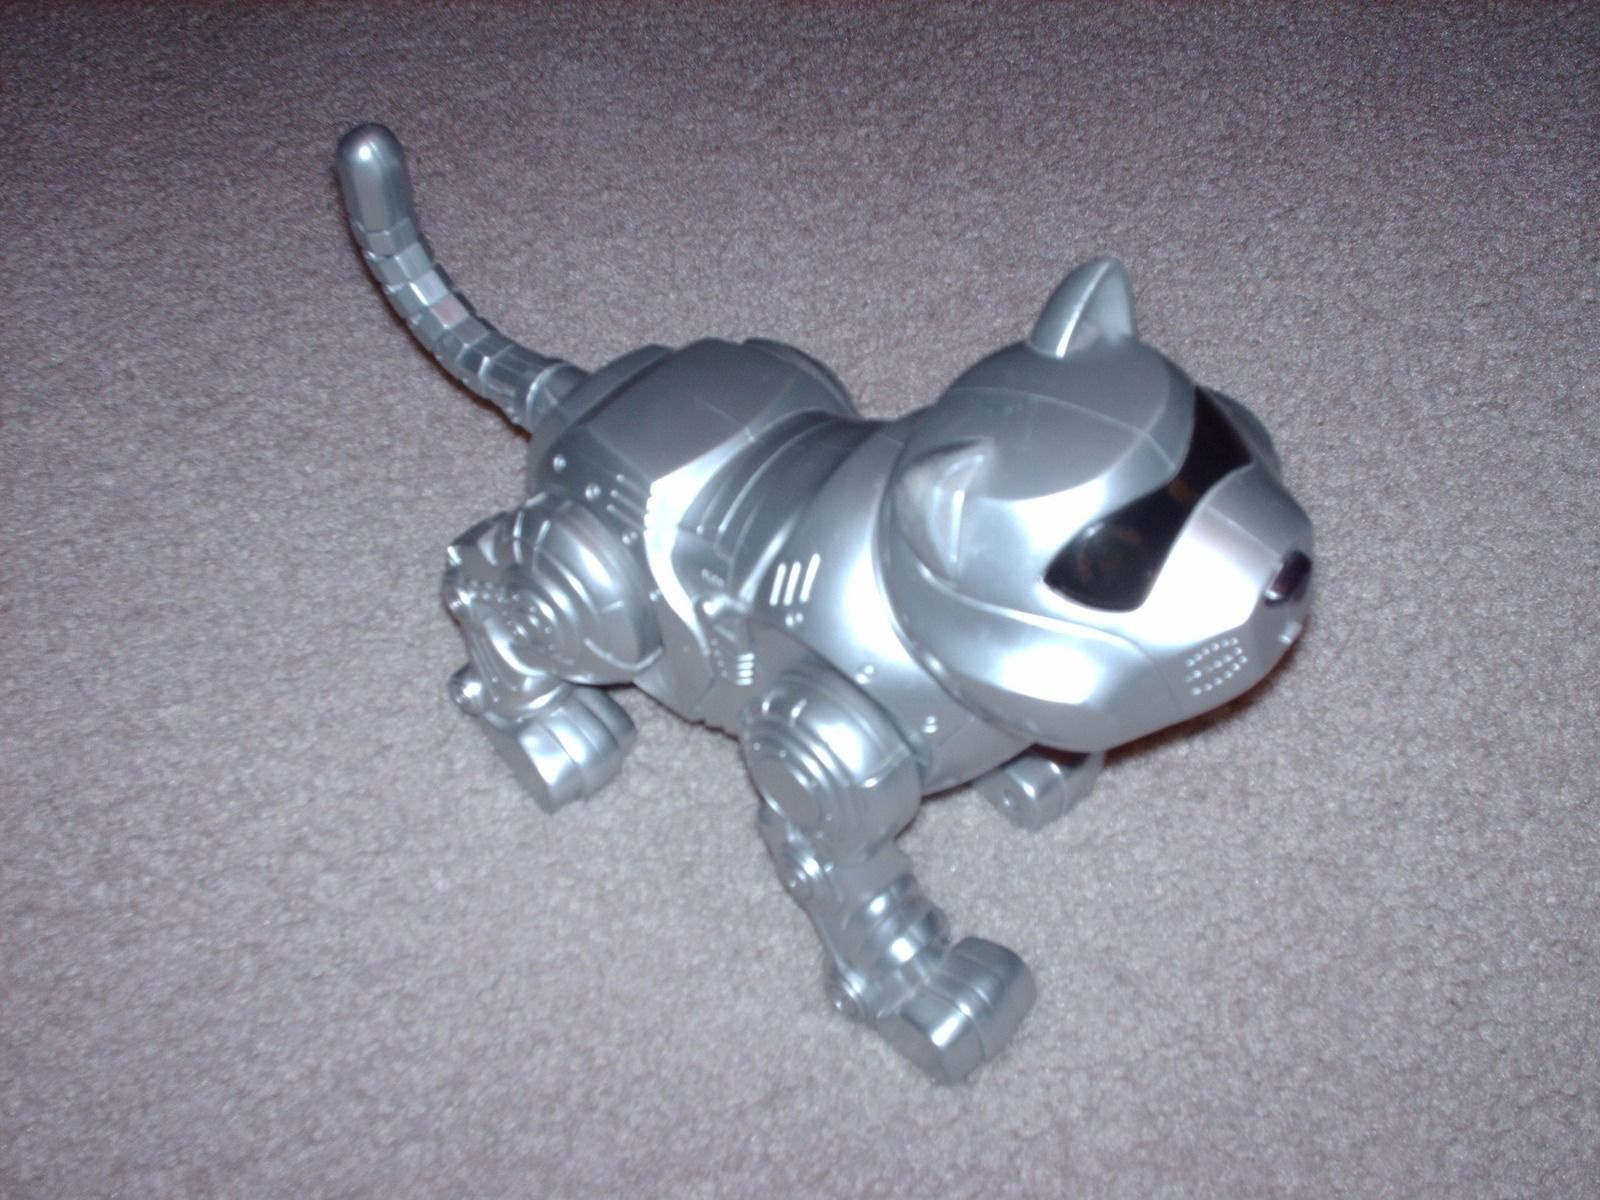 manley toy quest kitty manual